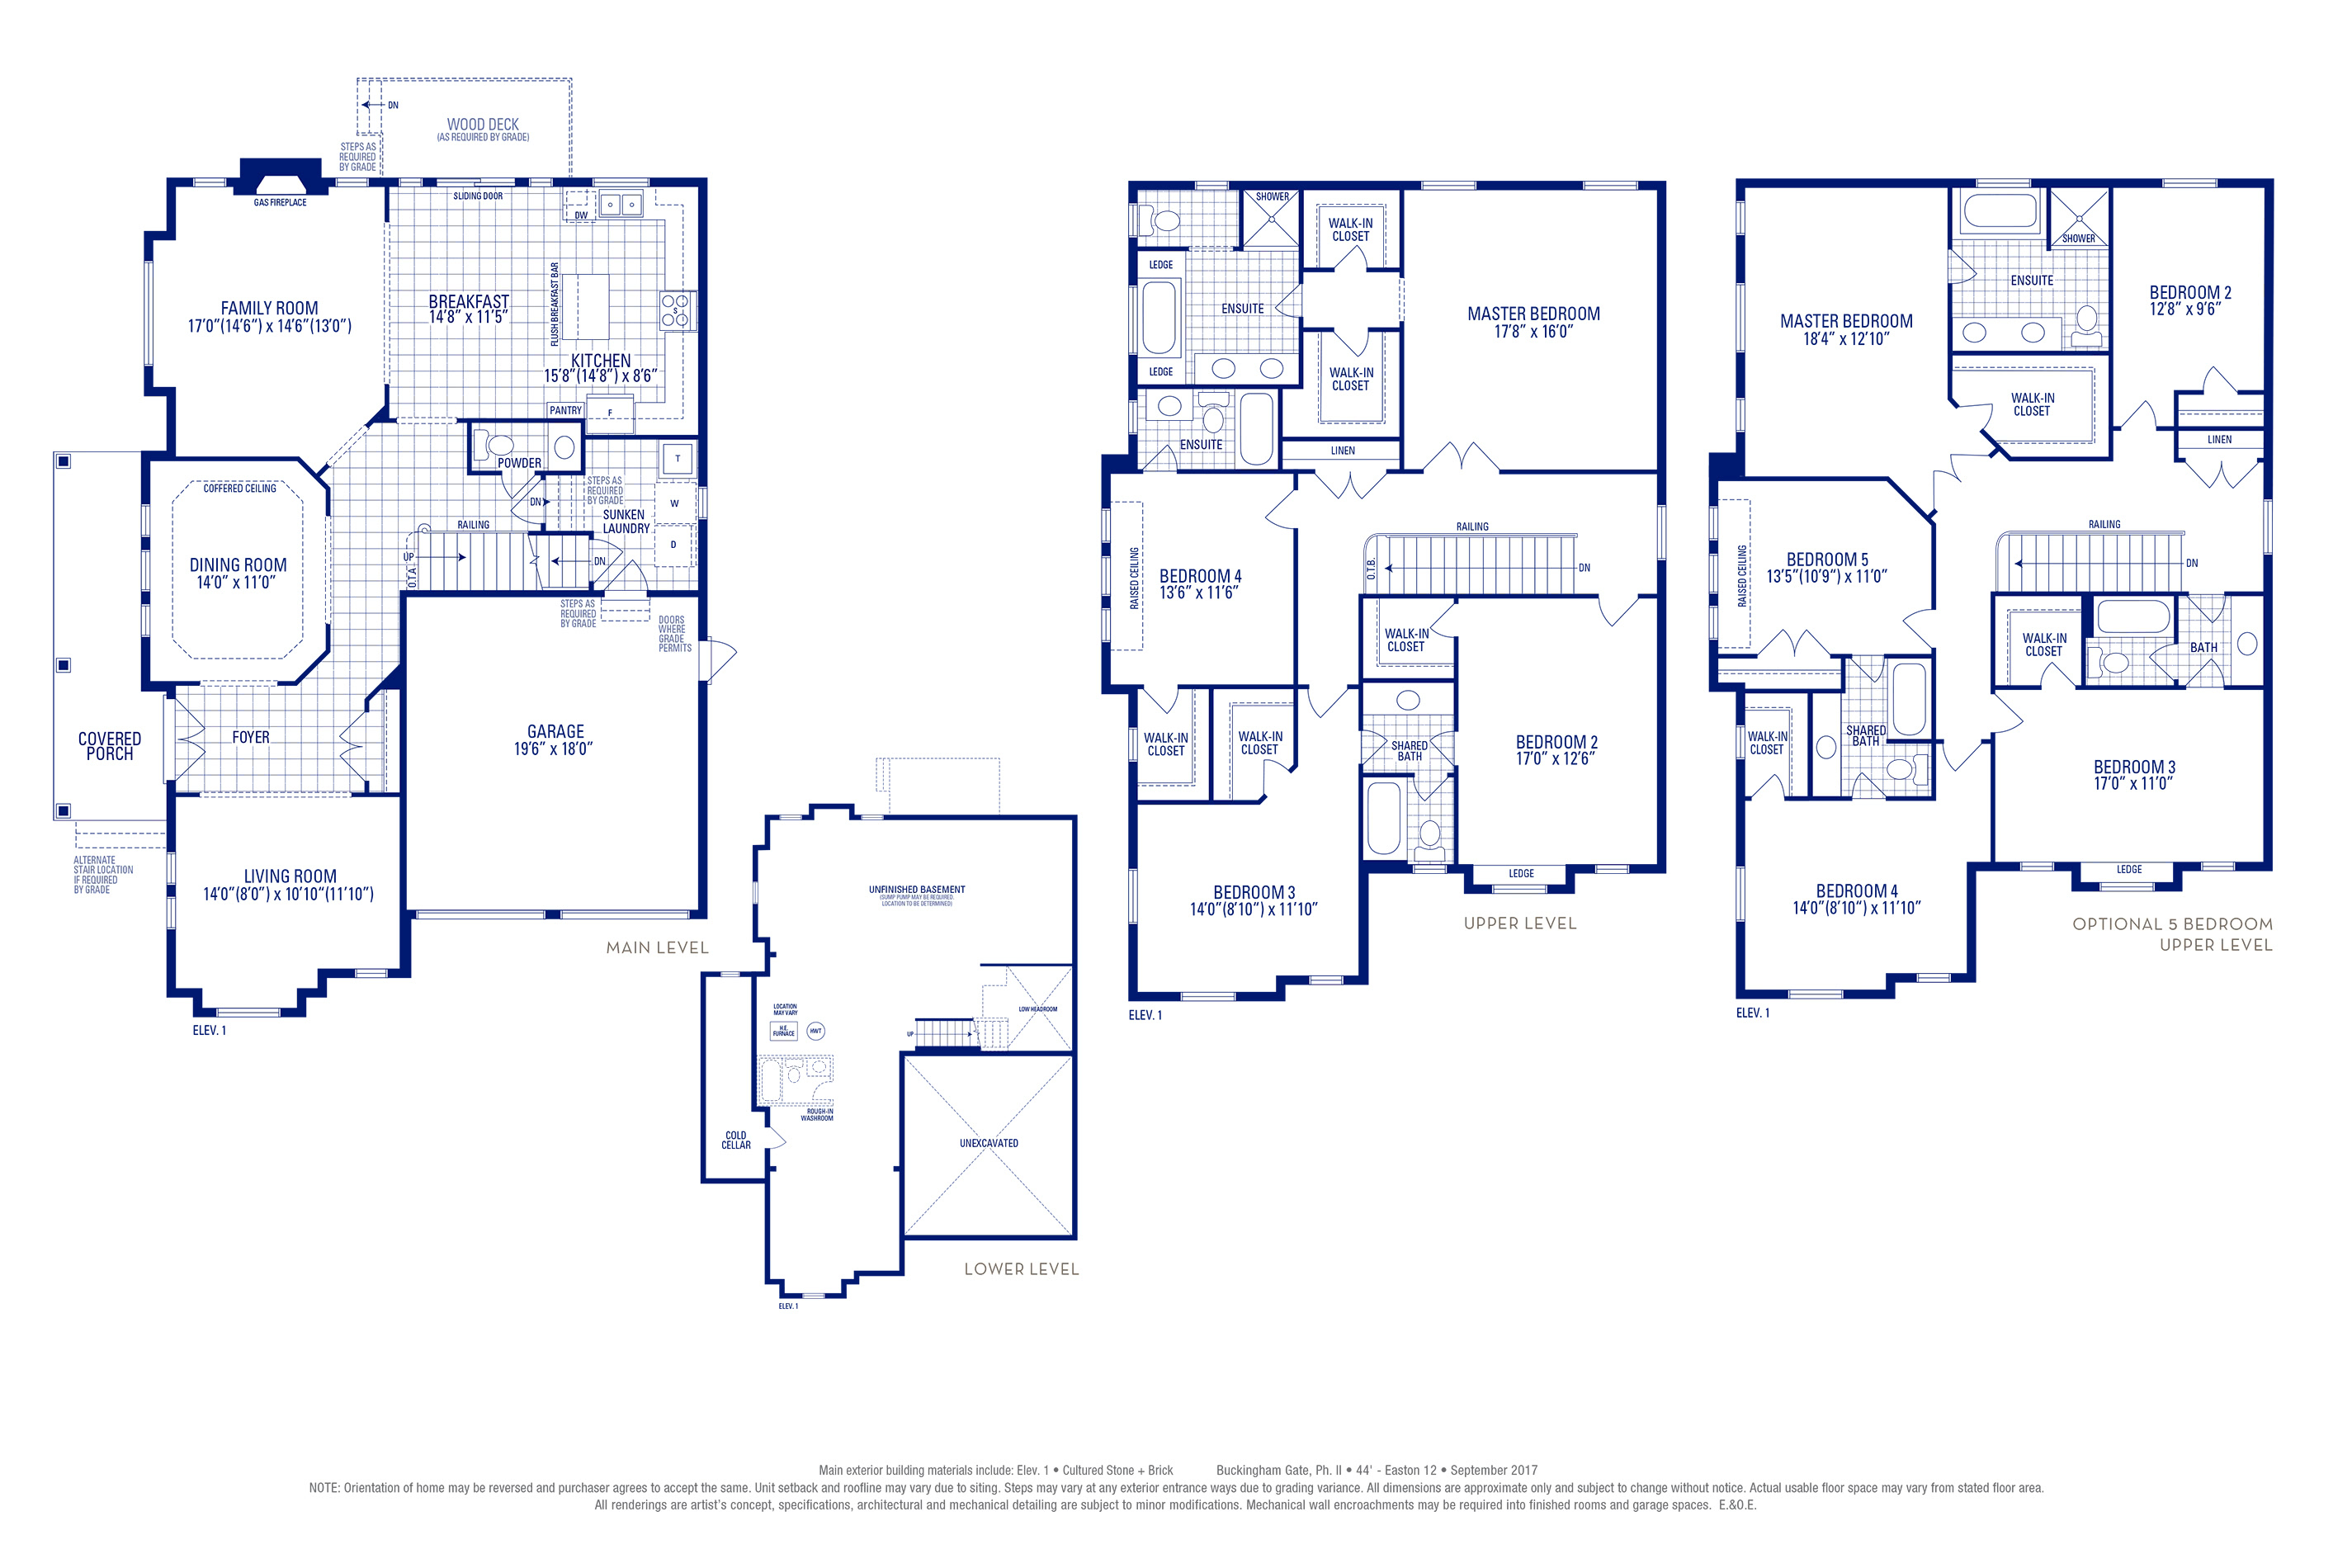 Easton 12 Elev. 1 Floorplan